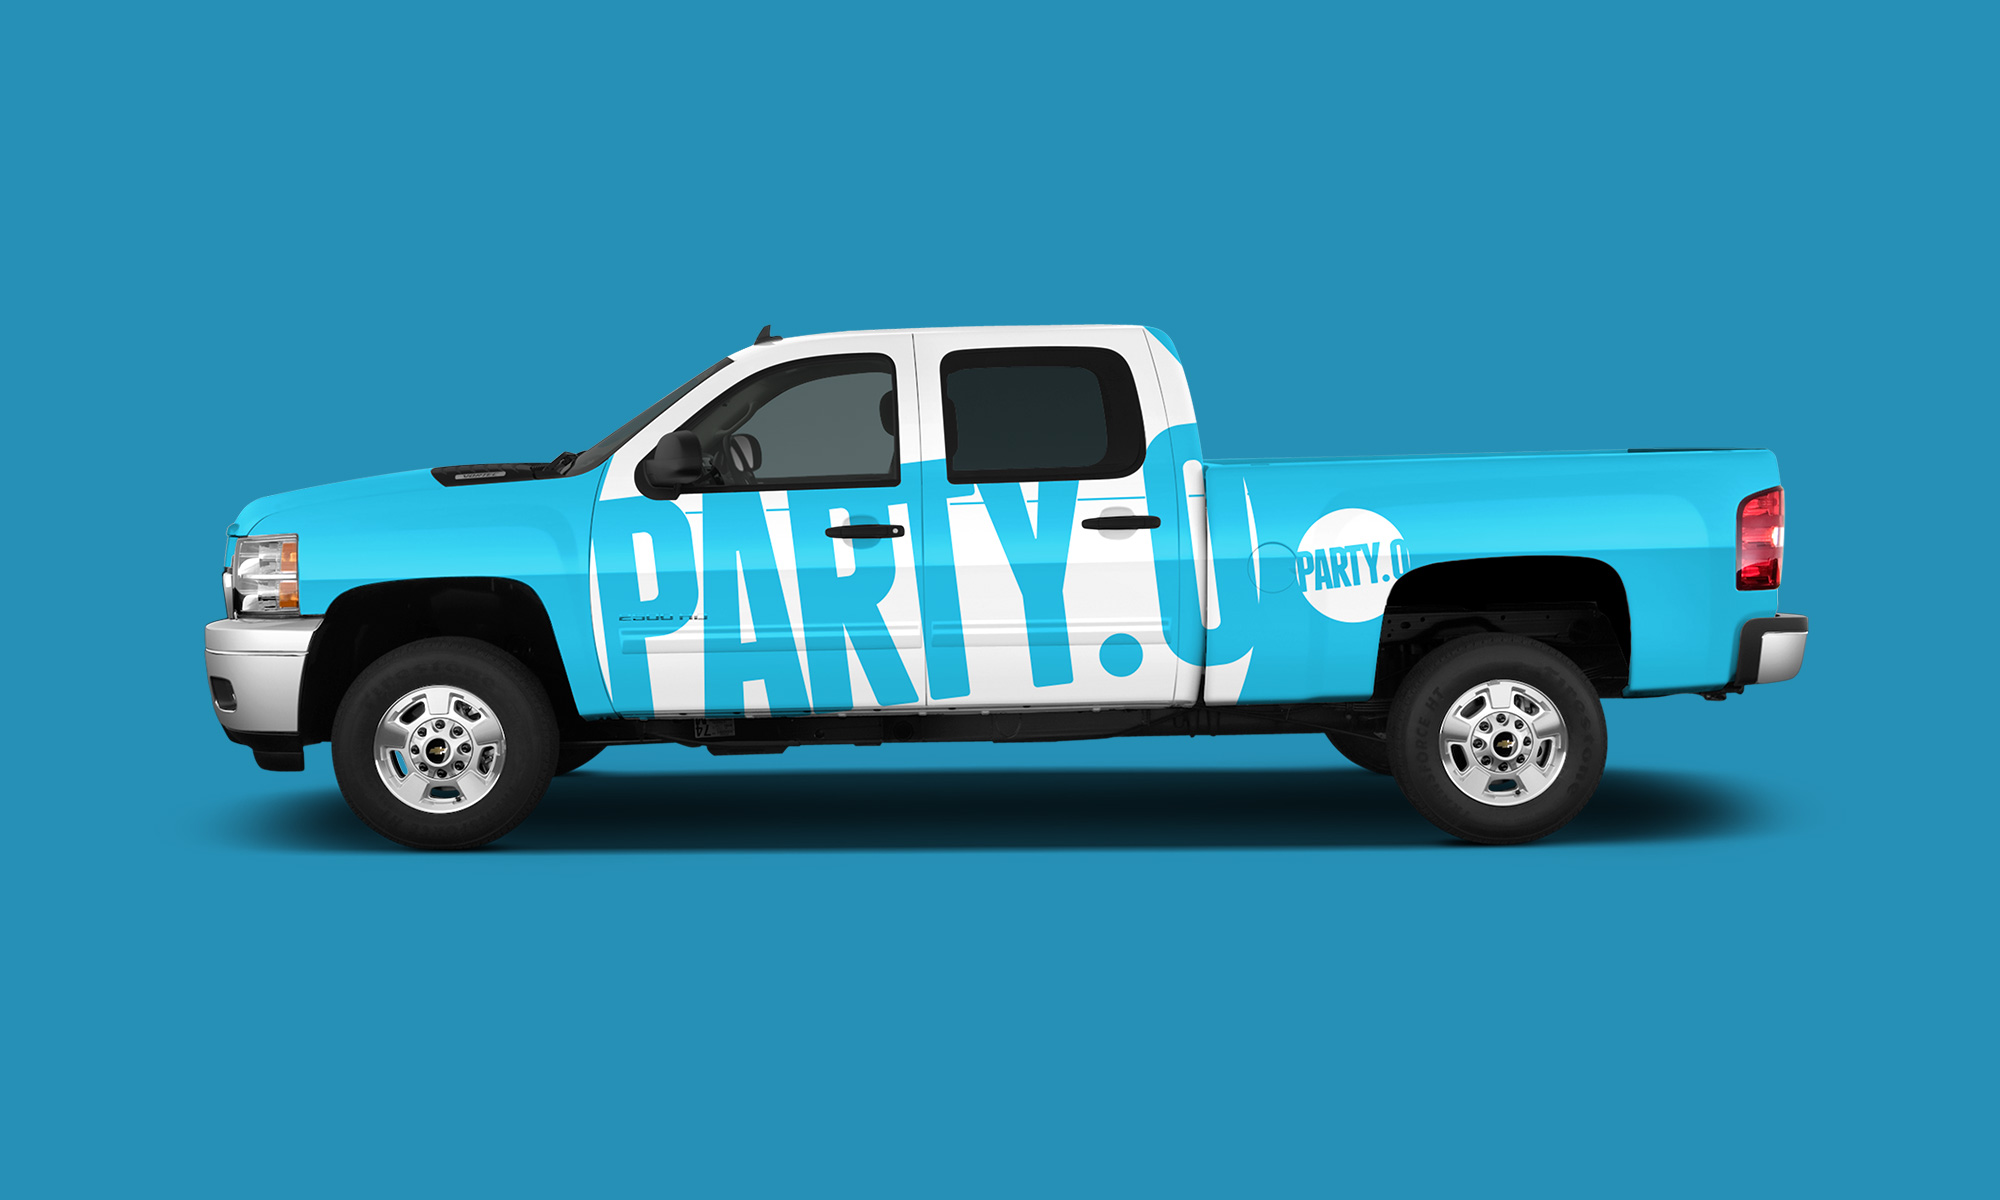 Party.0 truck wrap